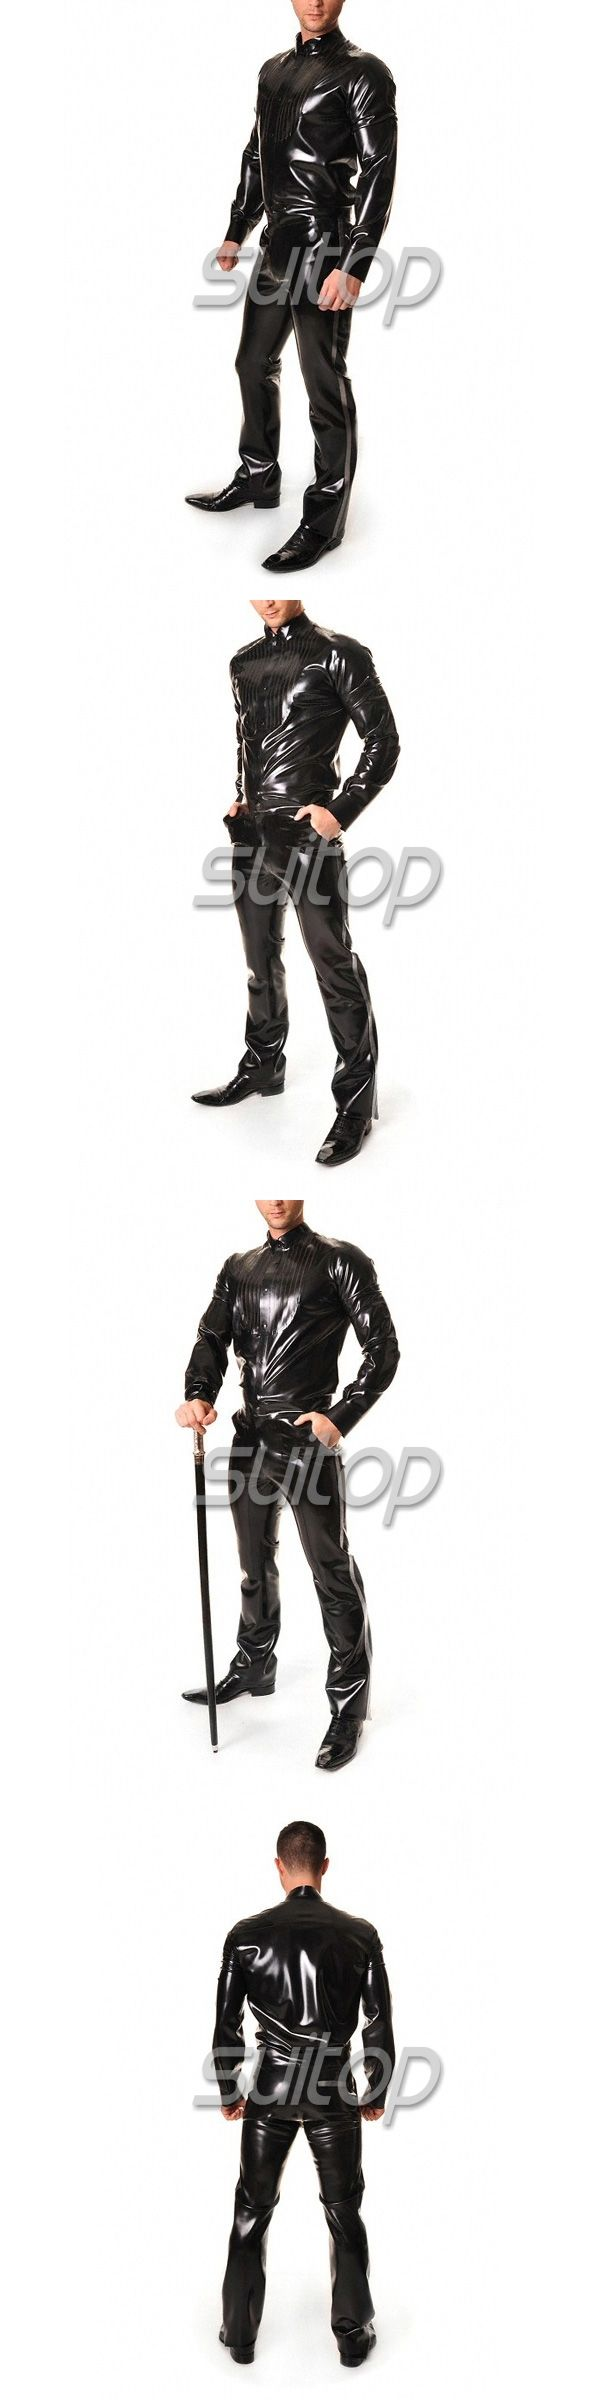 RUBBER UNIFORMS latex jeans for man